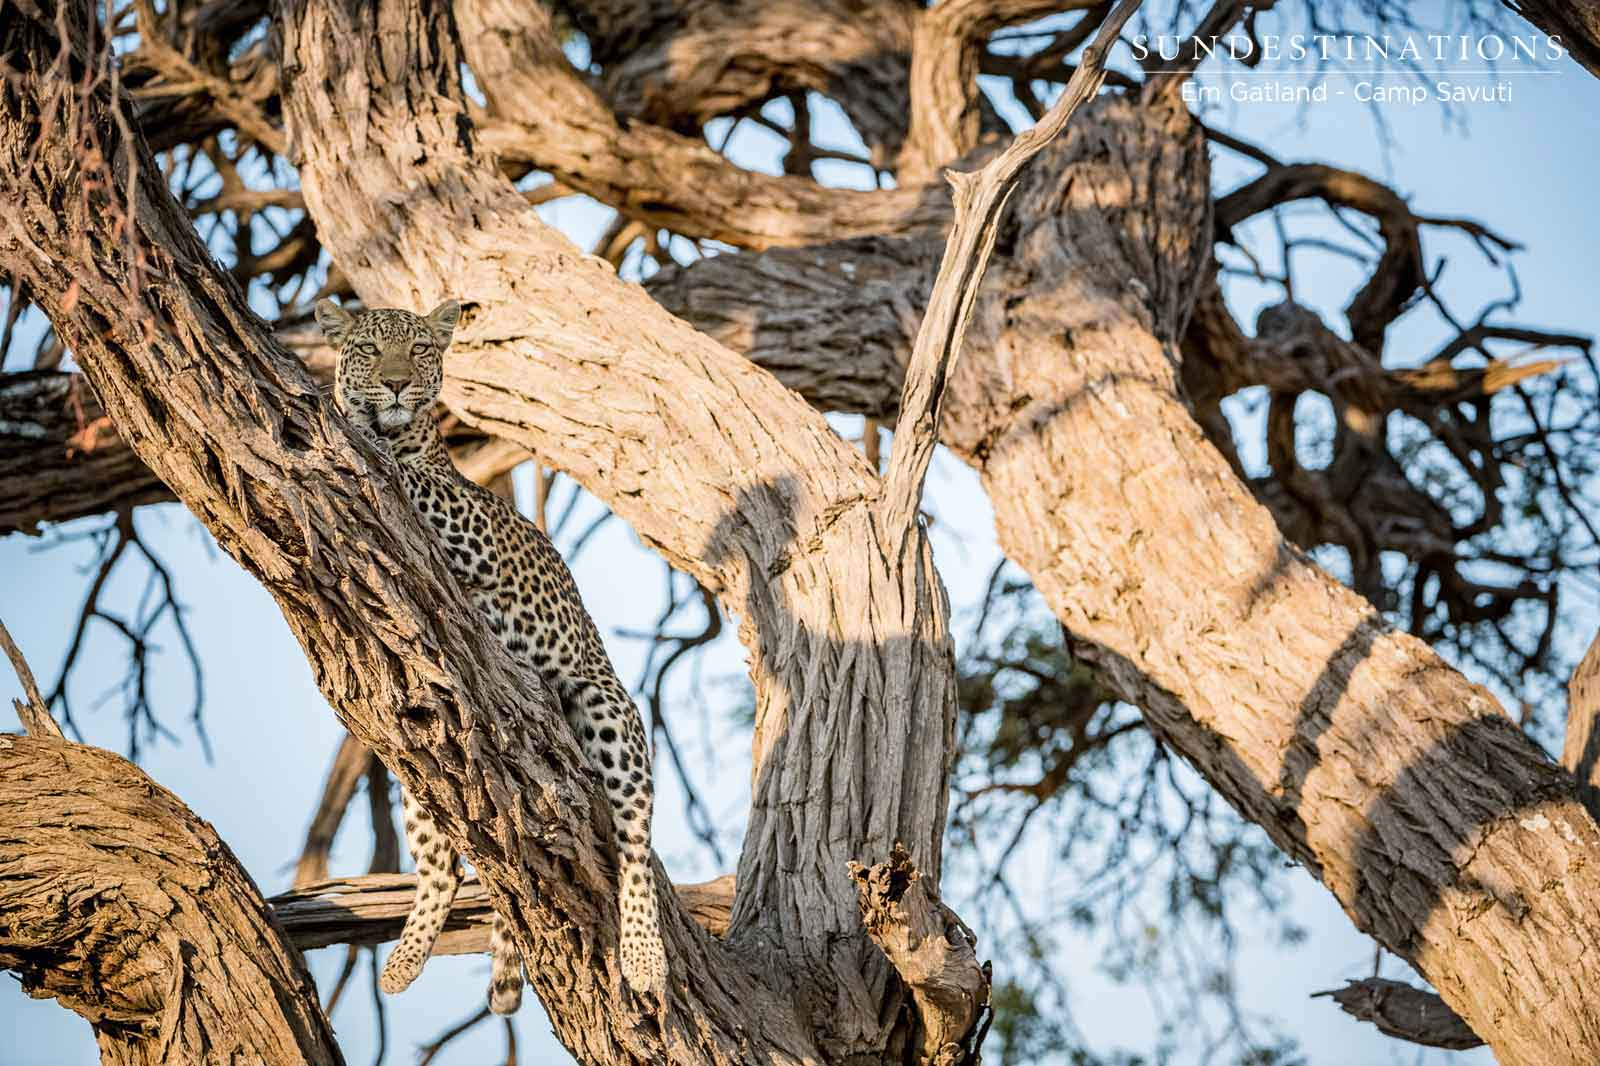 Leopards of Chobe National PArk